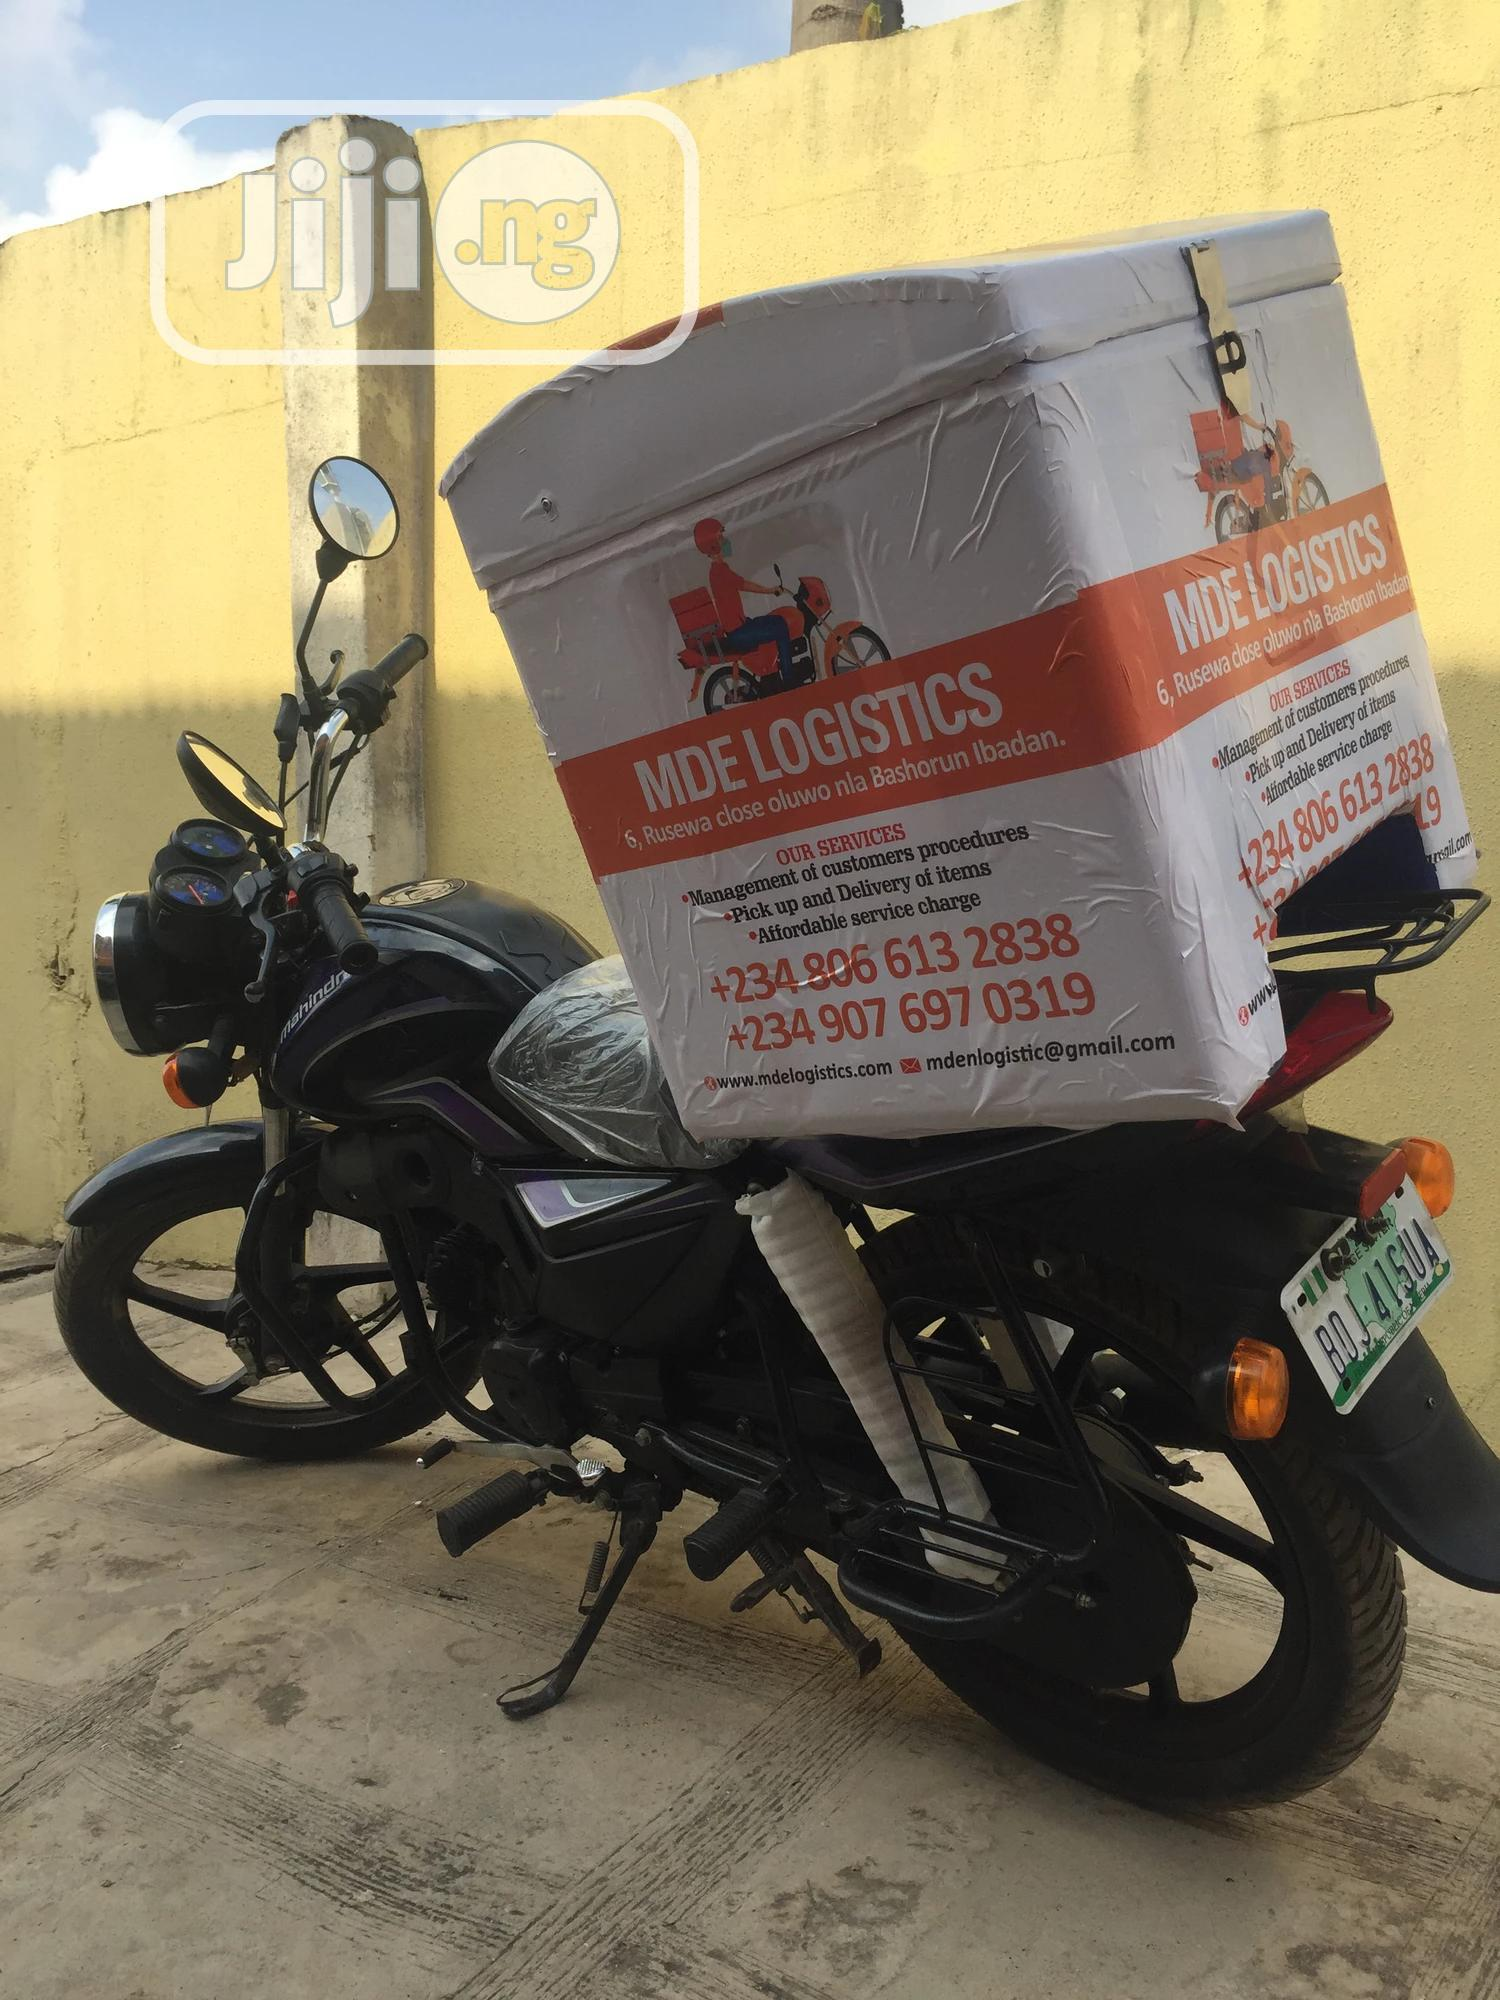 Archive: Dispatch Rider Needed